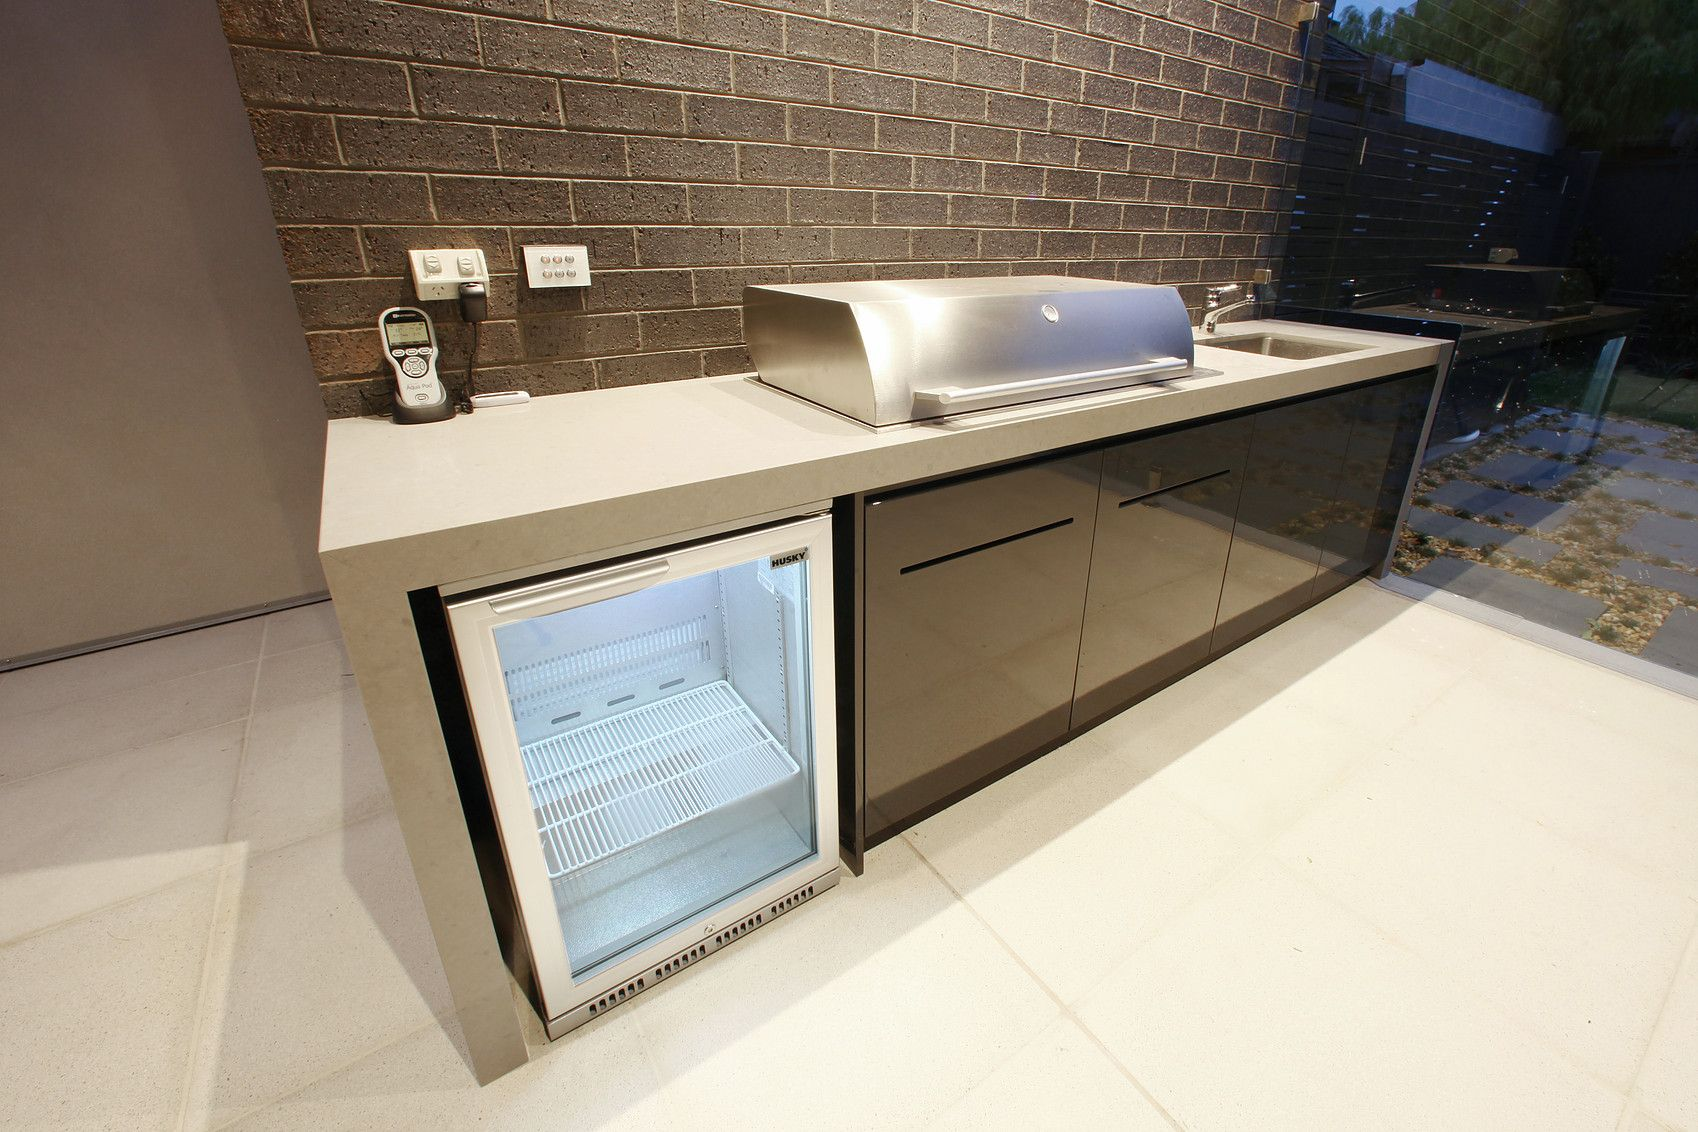 Outdoor Waterproof Alfresco Kitchens, Outdoor BBQ areas, waterproof ...